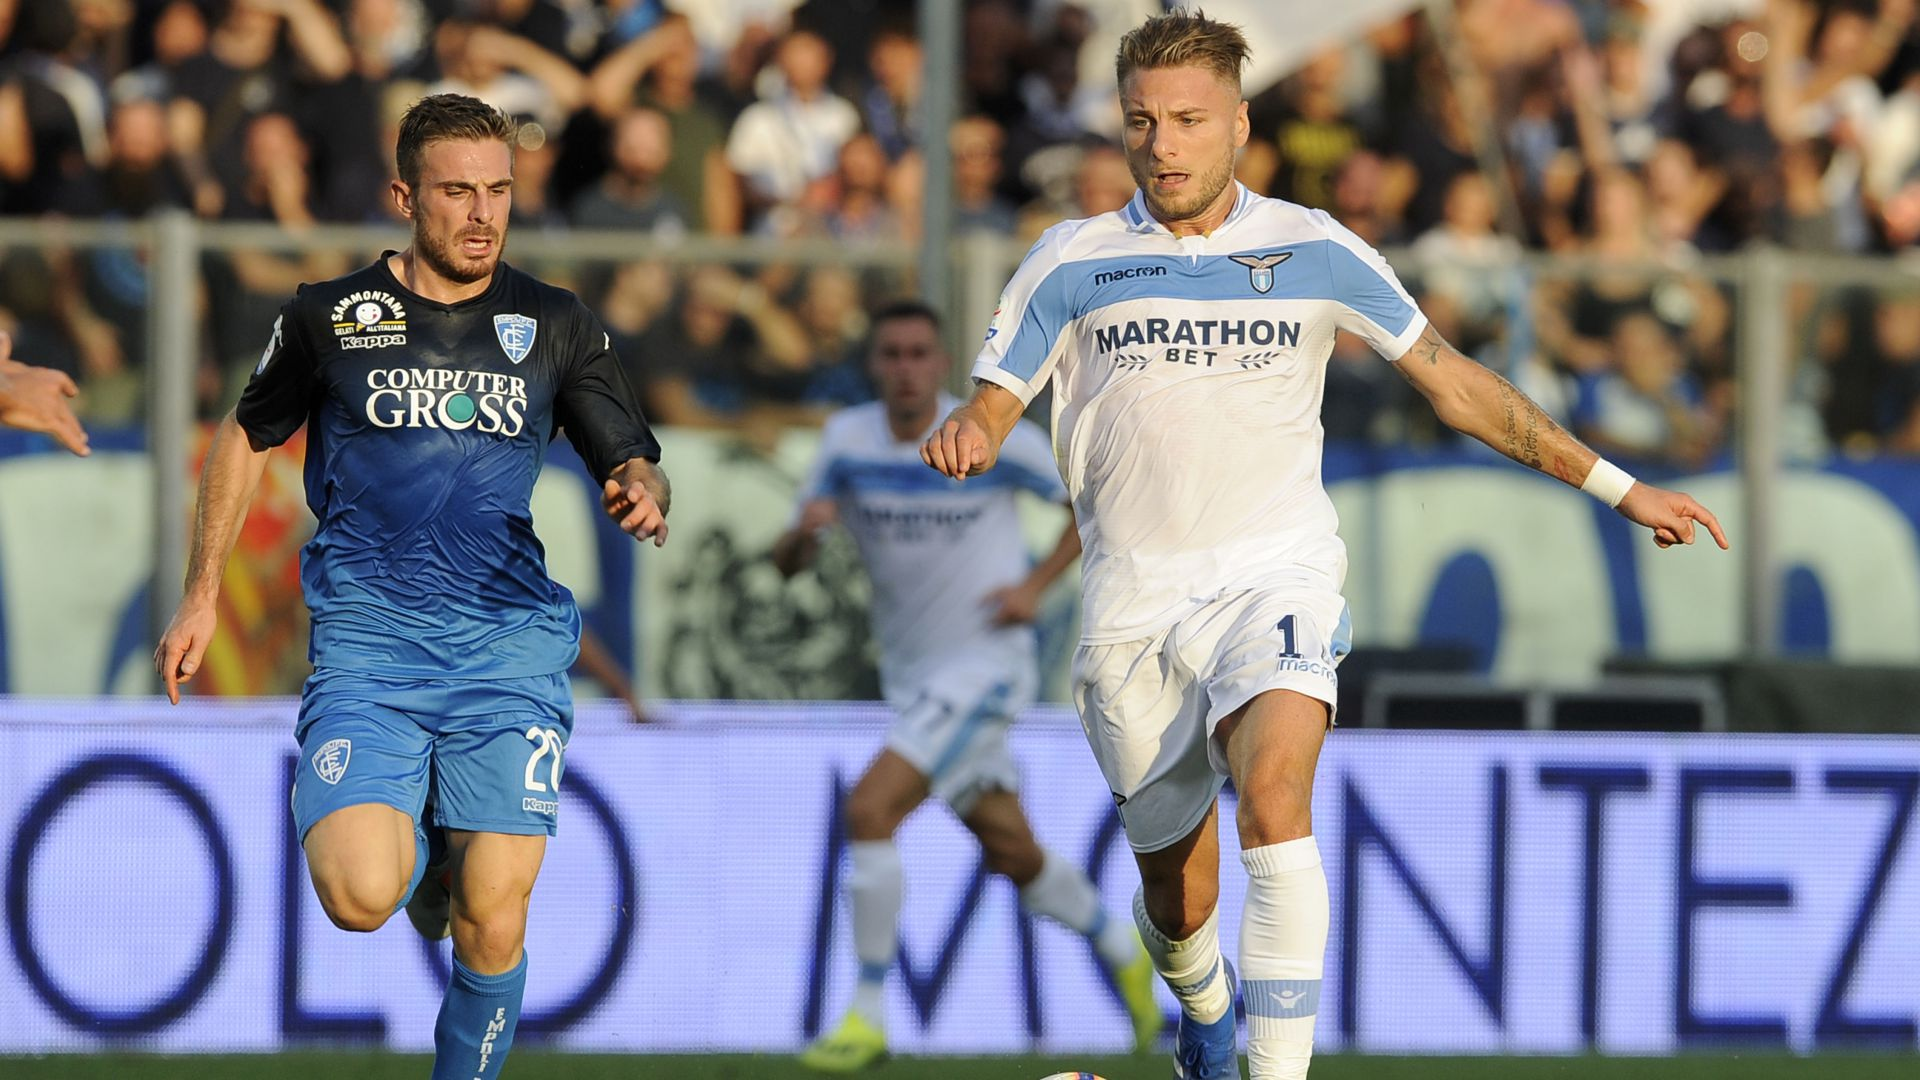 Empoli vs lazio betting preview goal can you bet on olympic games